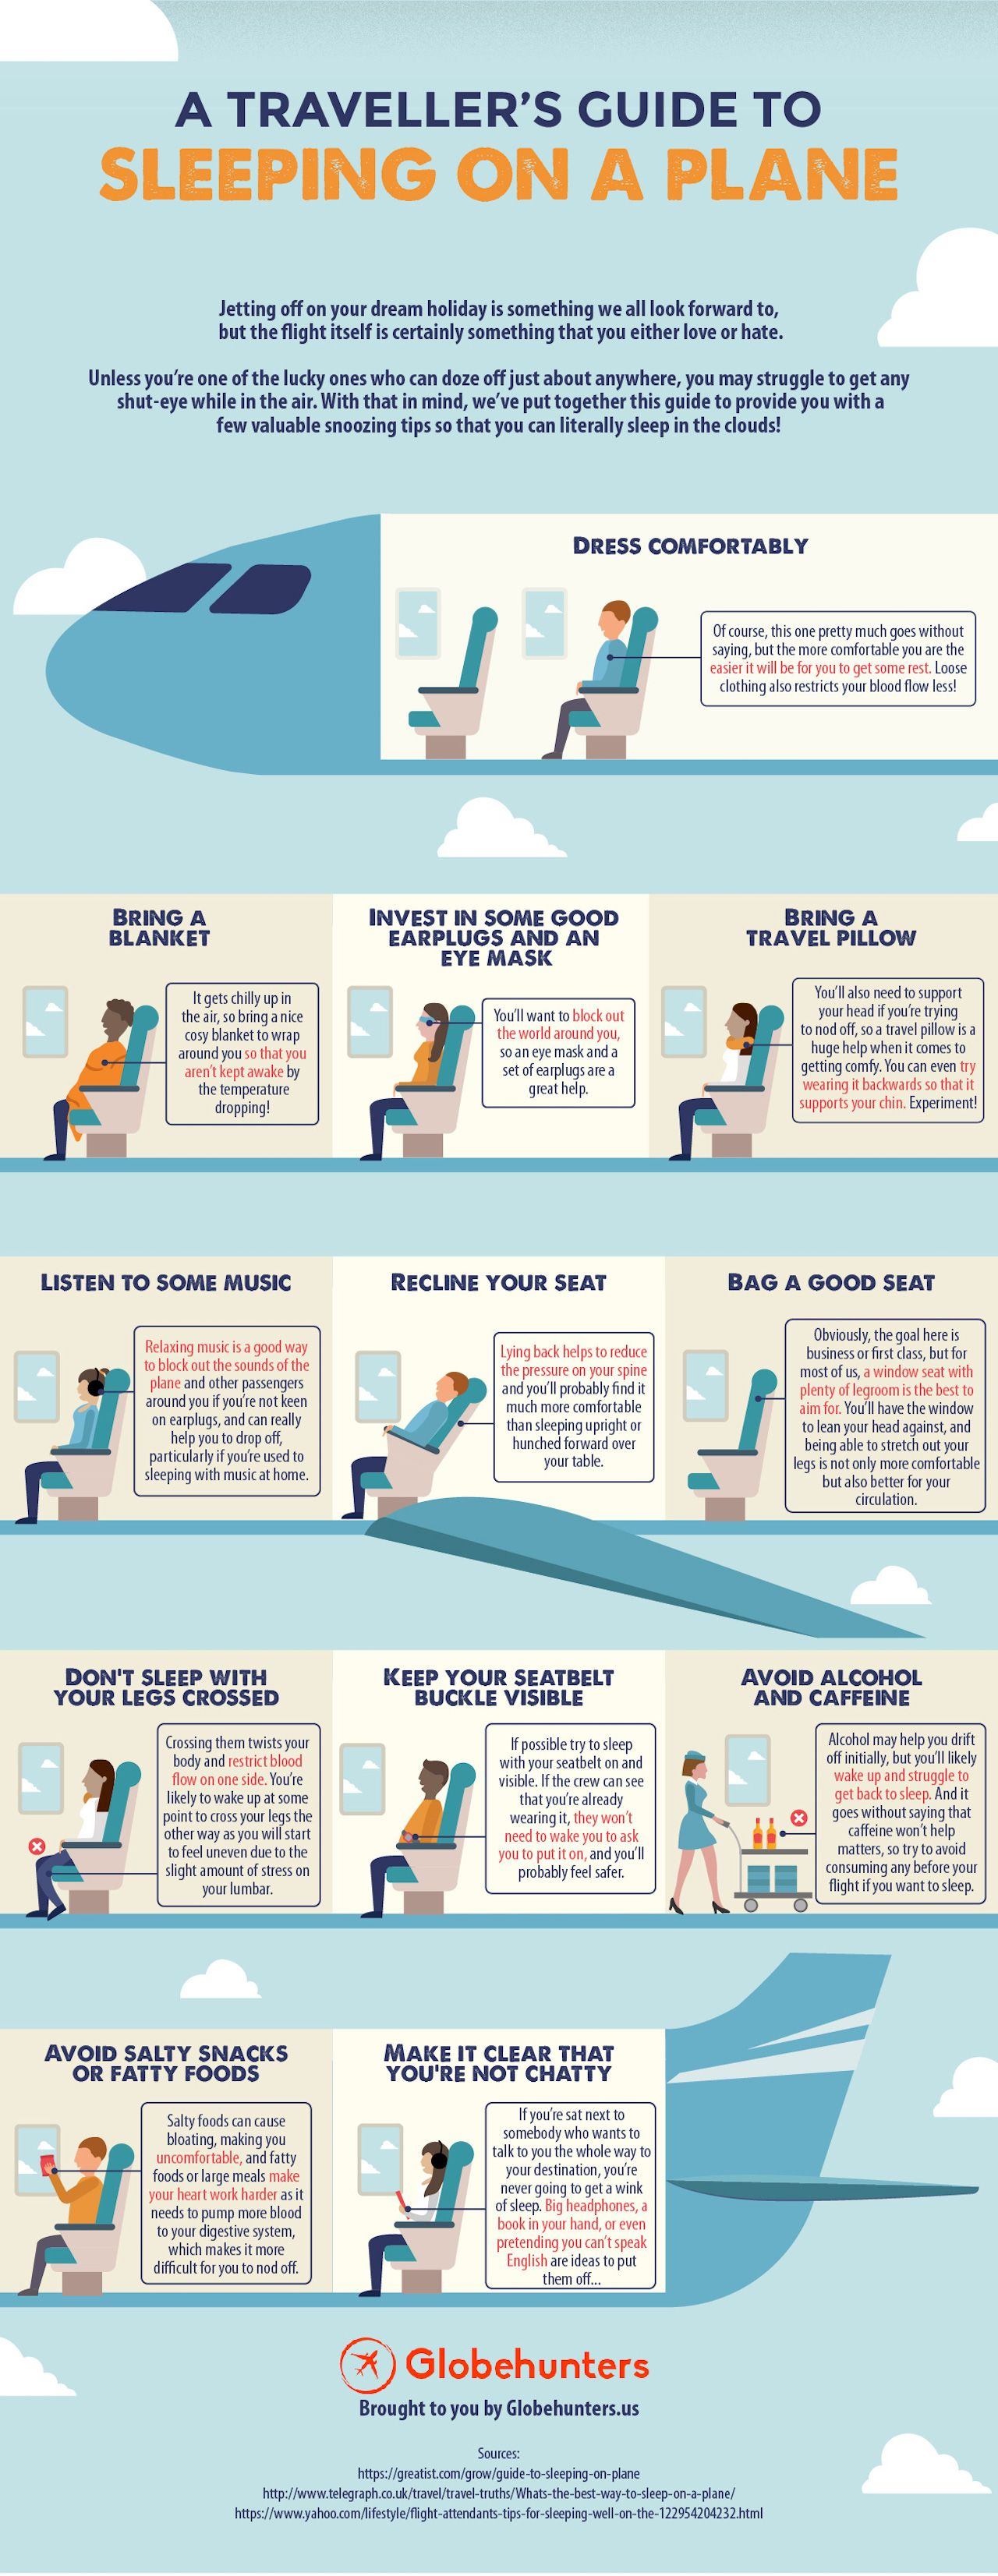 how to sleep on a plane infographic